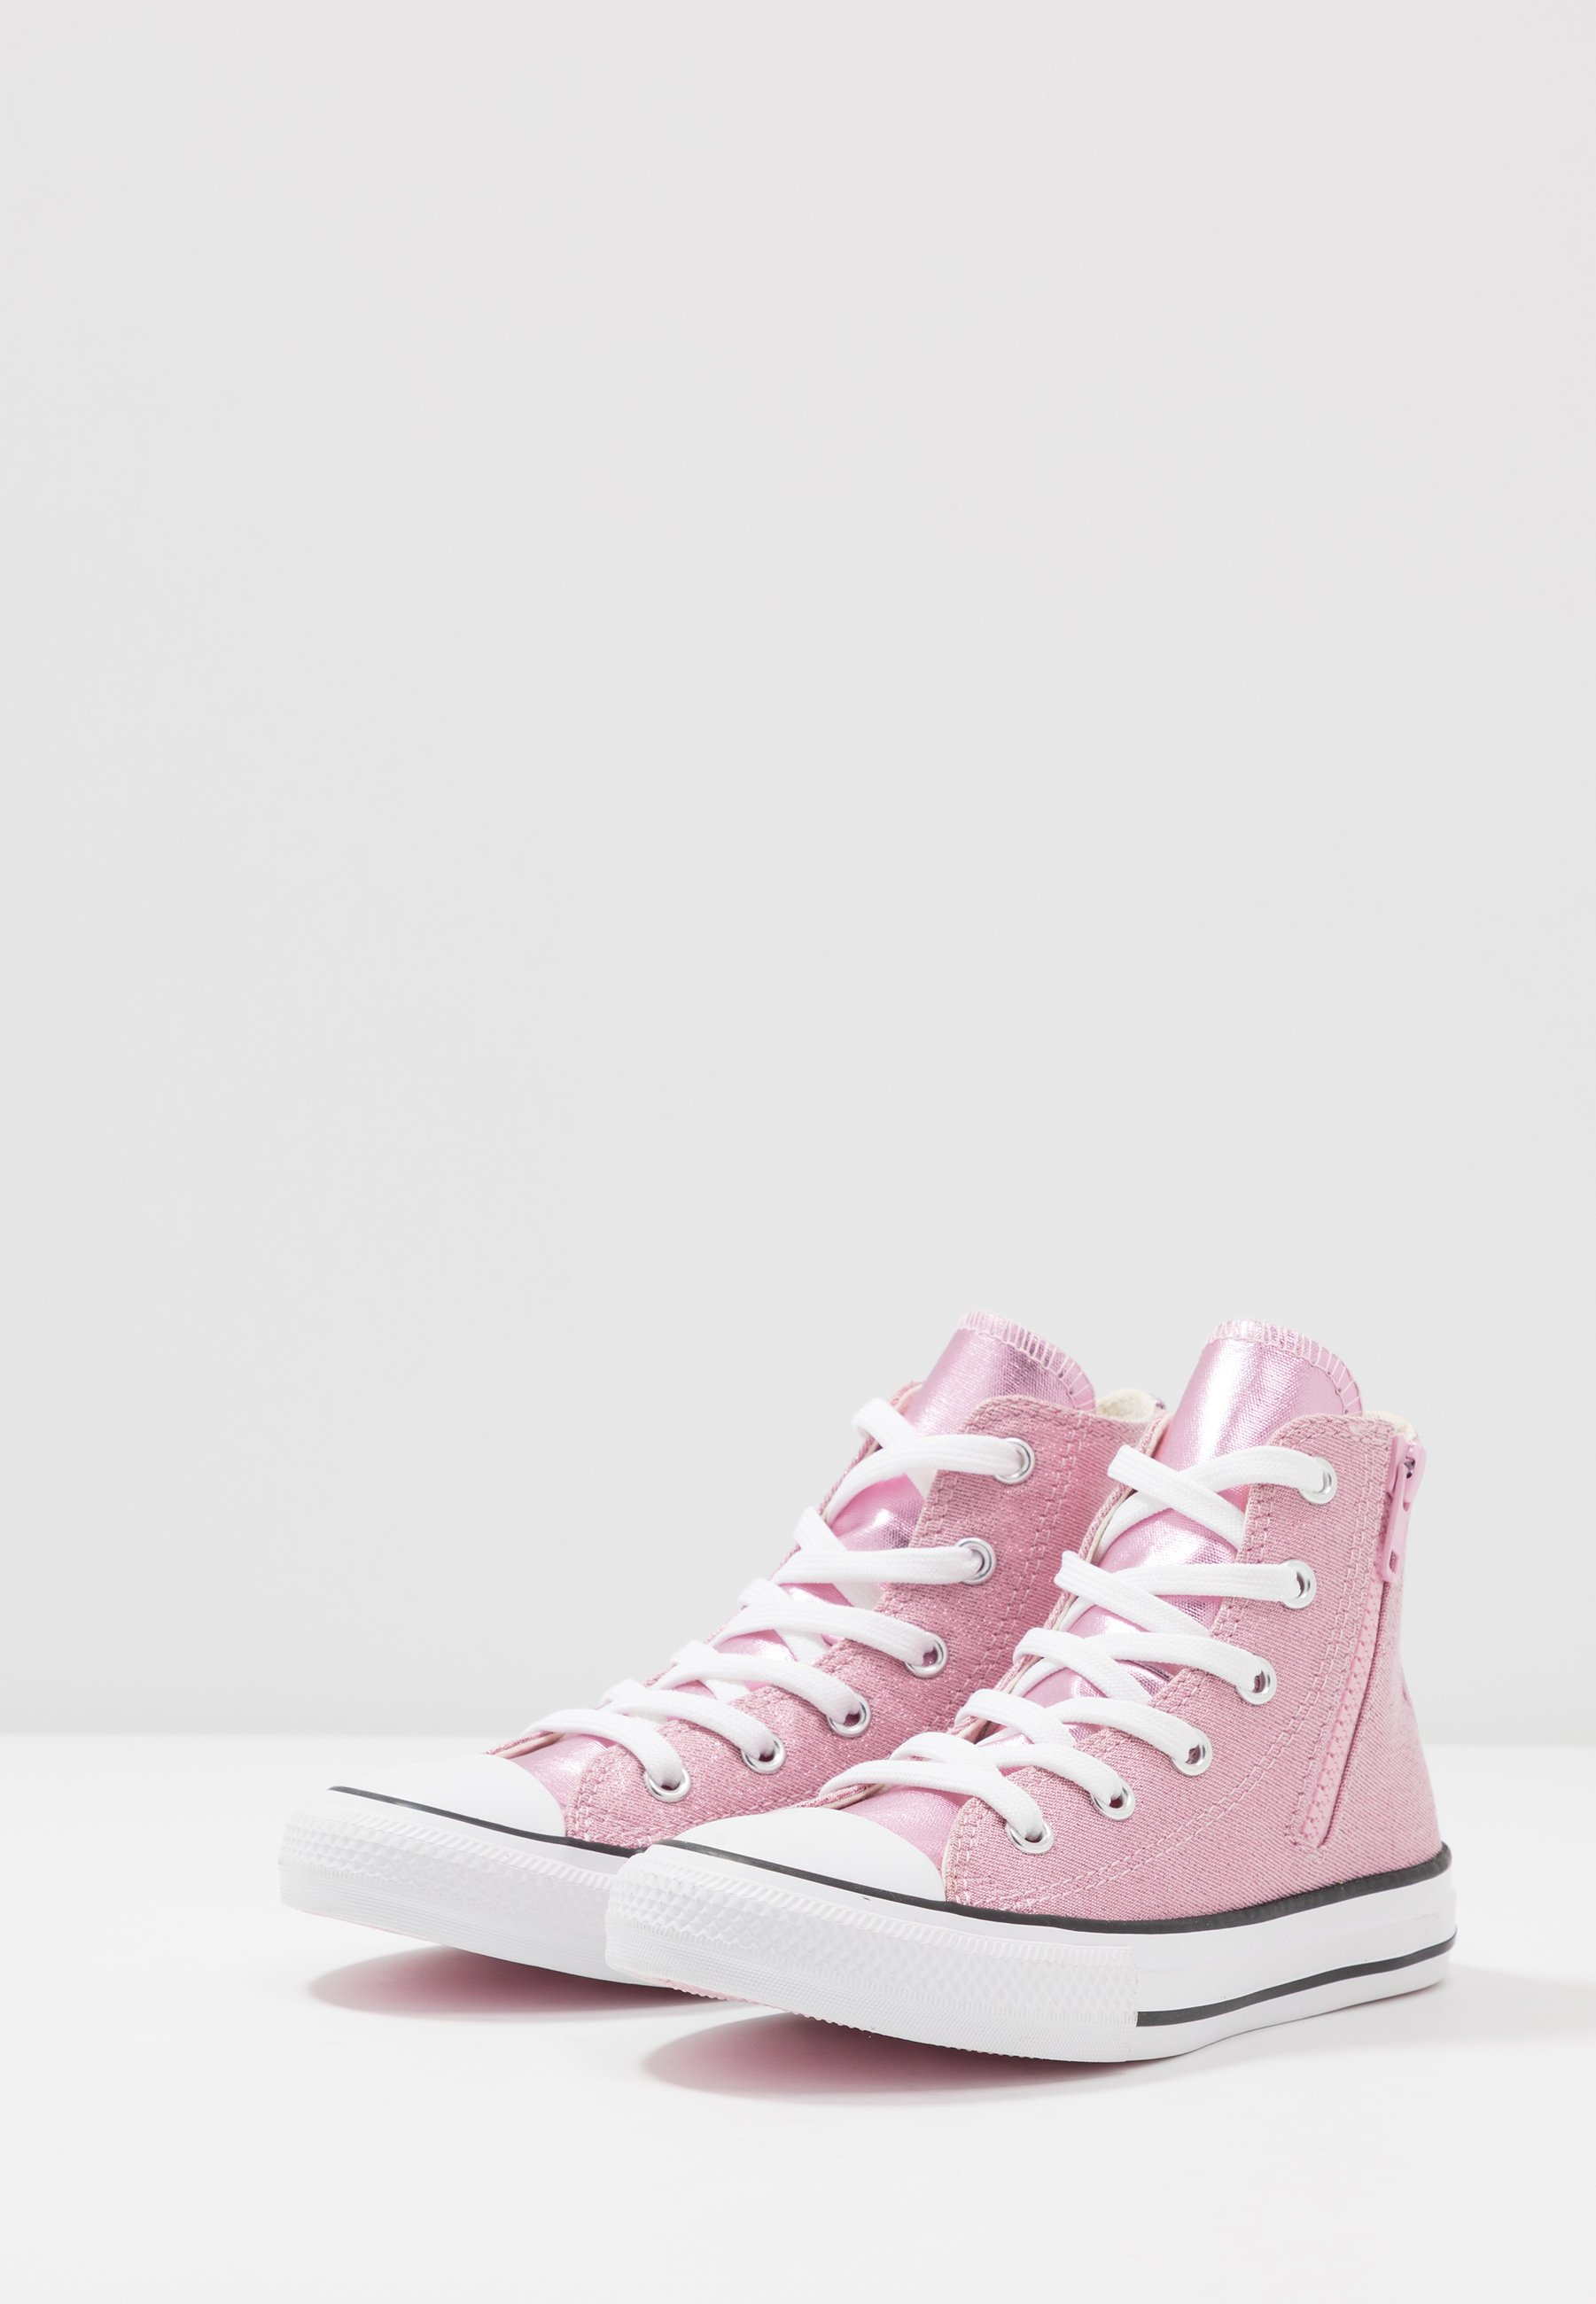 CHUCK TAYLOR ALL STAR SIDE ZIP Sneakers hoog cherry blossomwhite